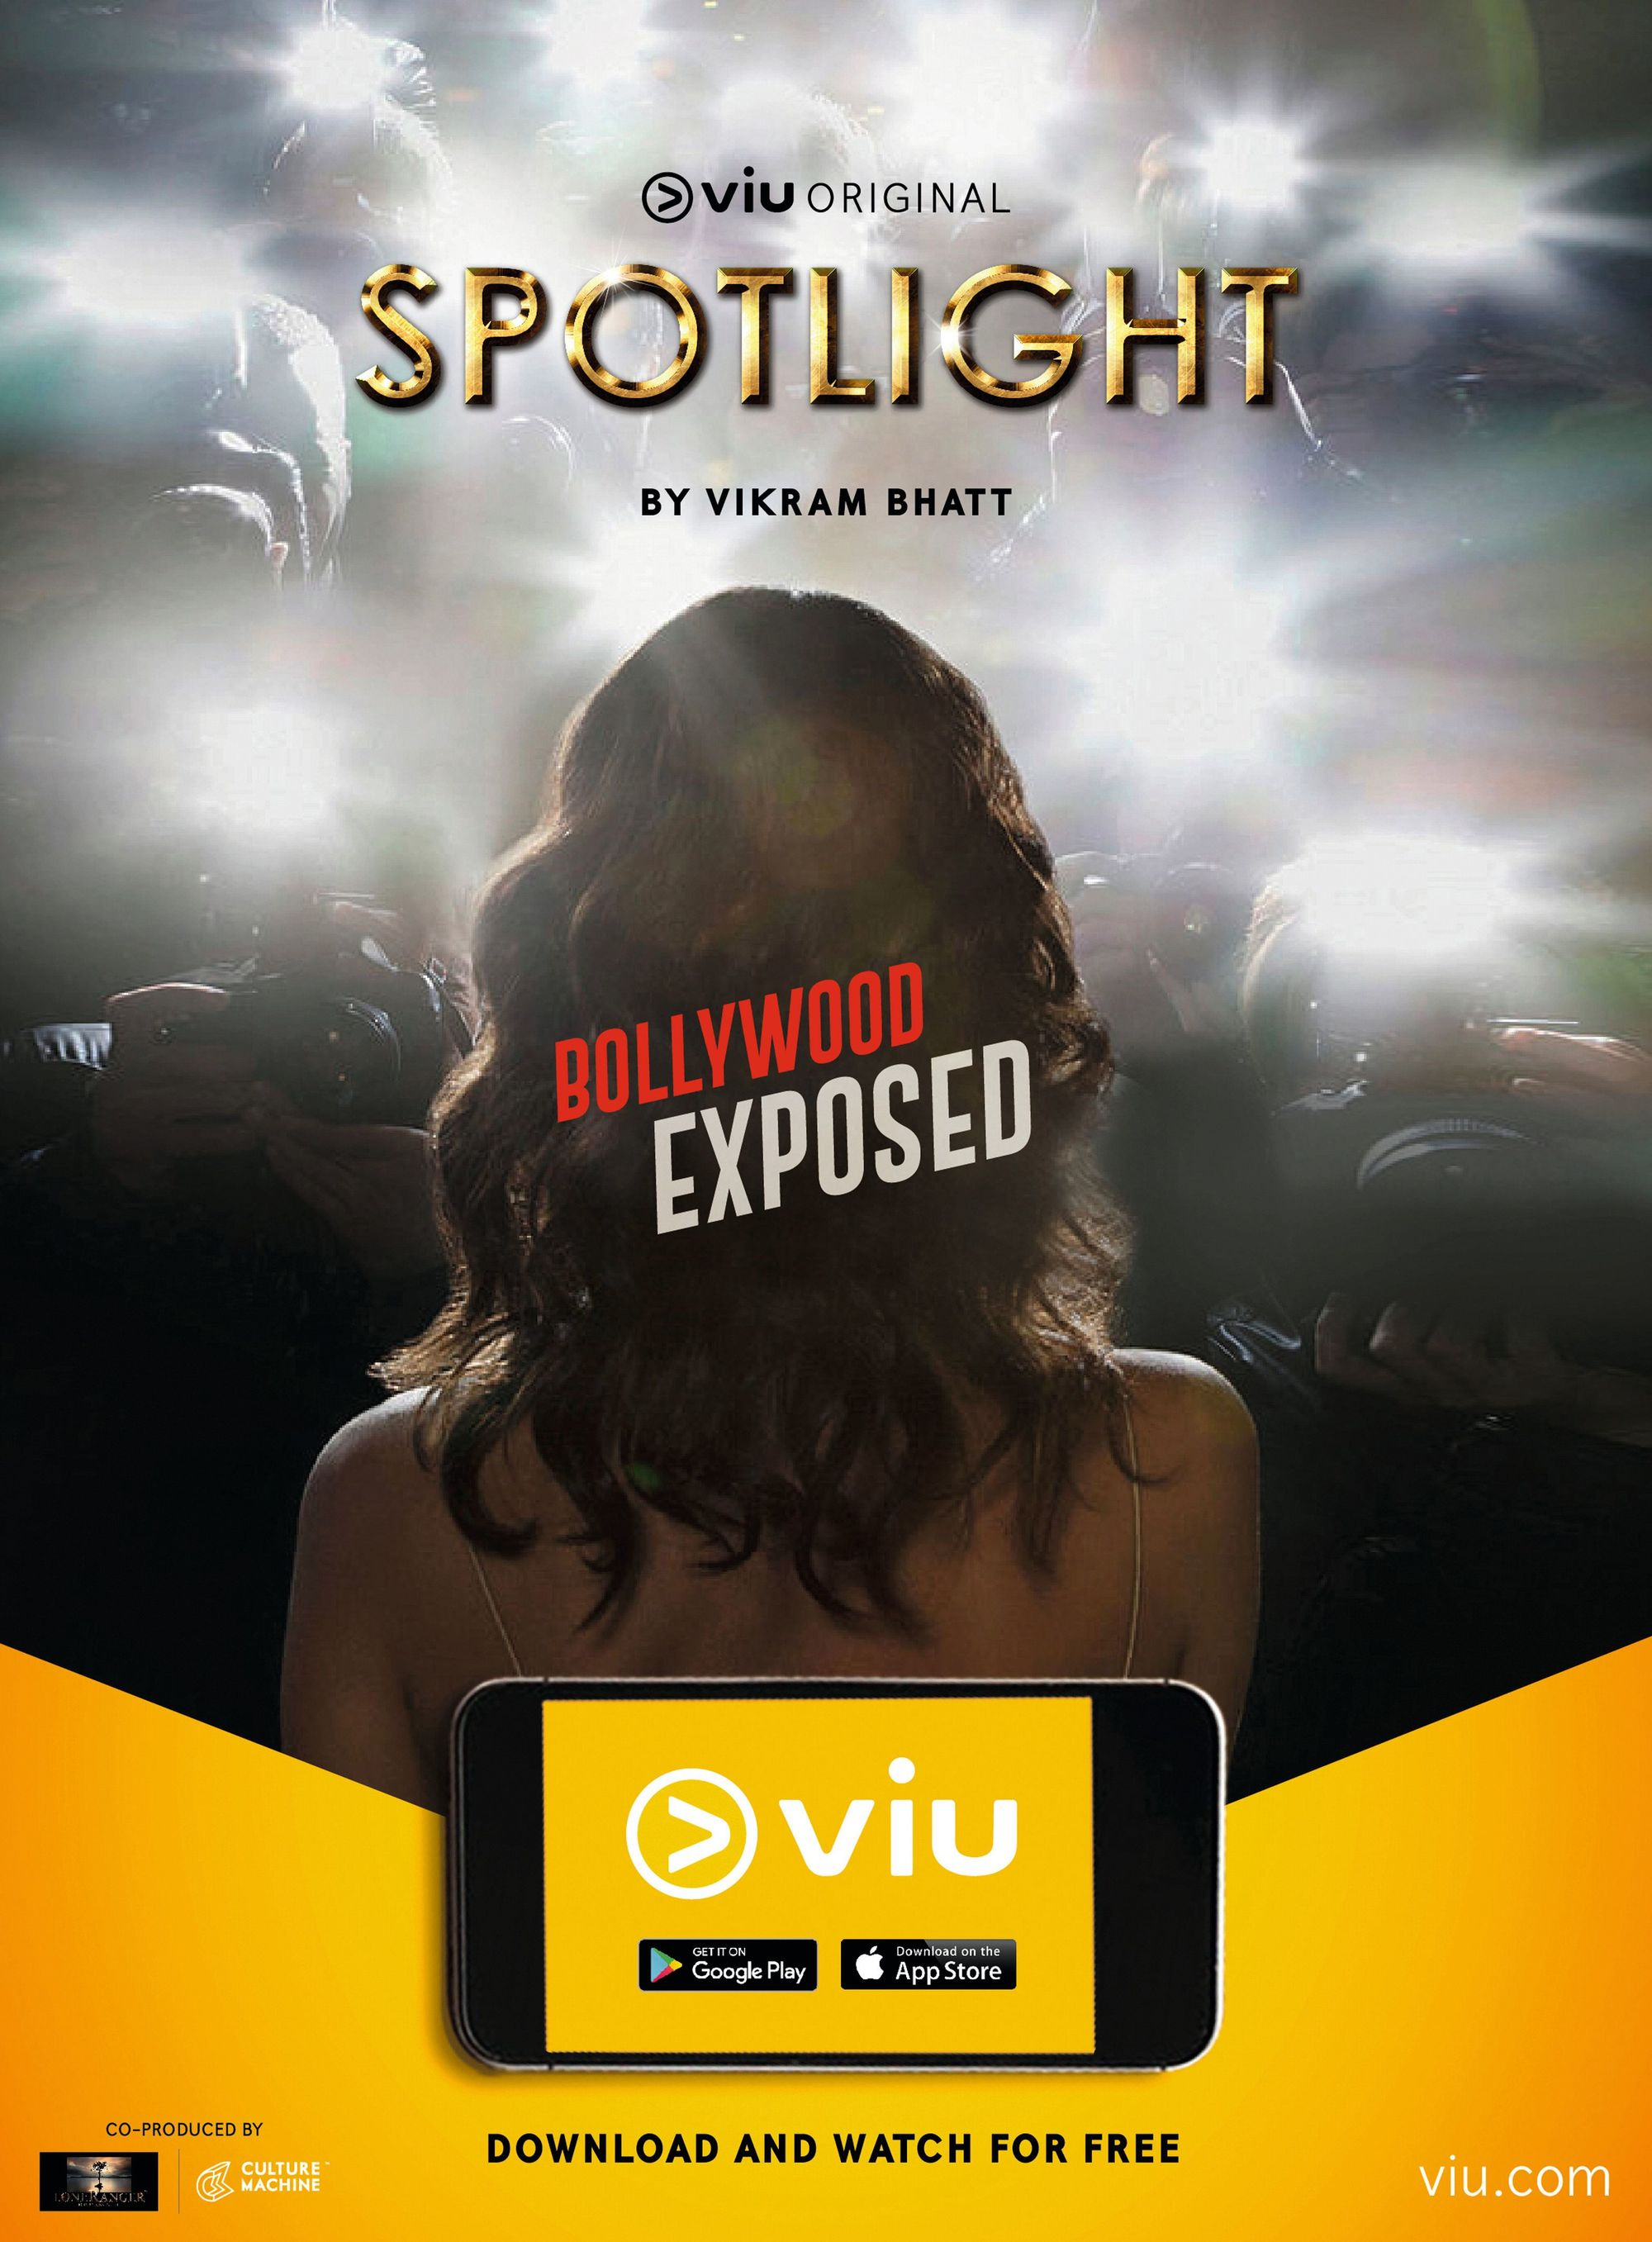 Spotlight, by Vikram Bhatt, 2017